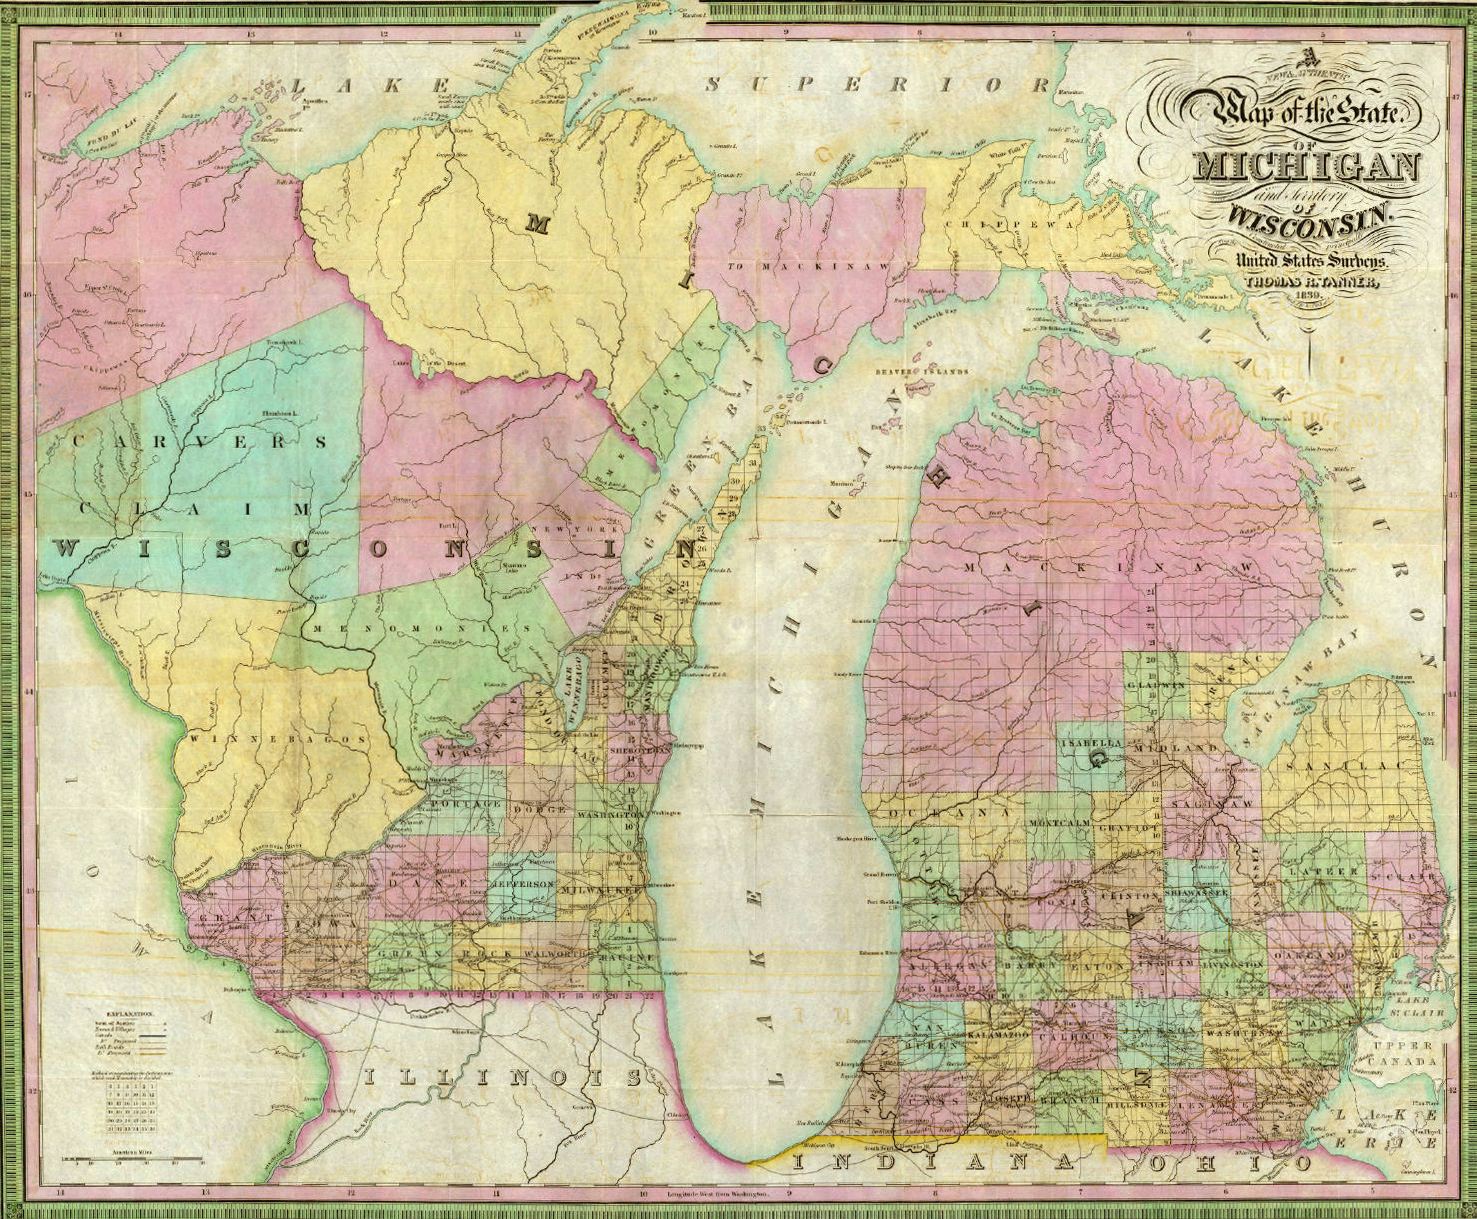 An Almost Complete History of the Upper Peninsula